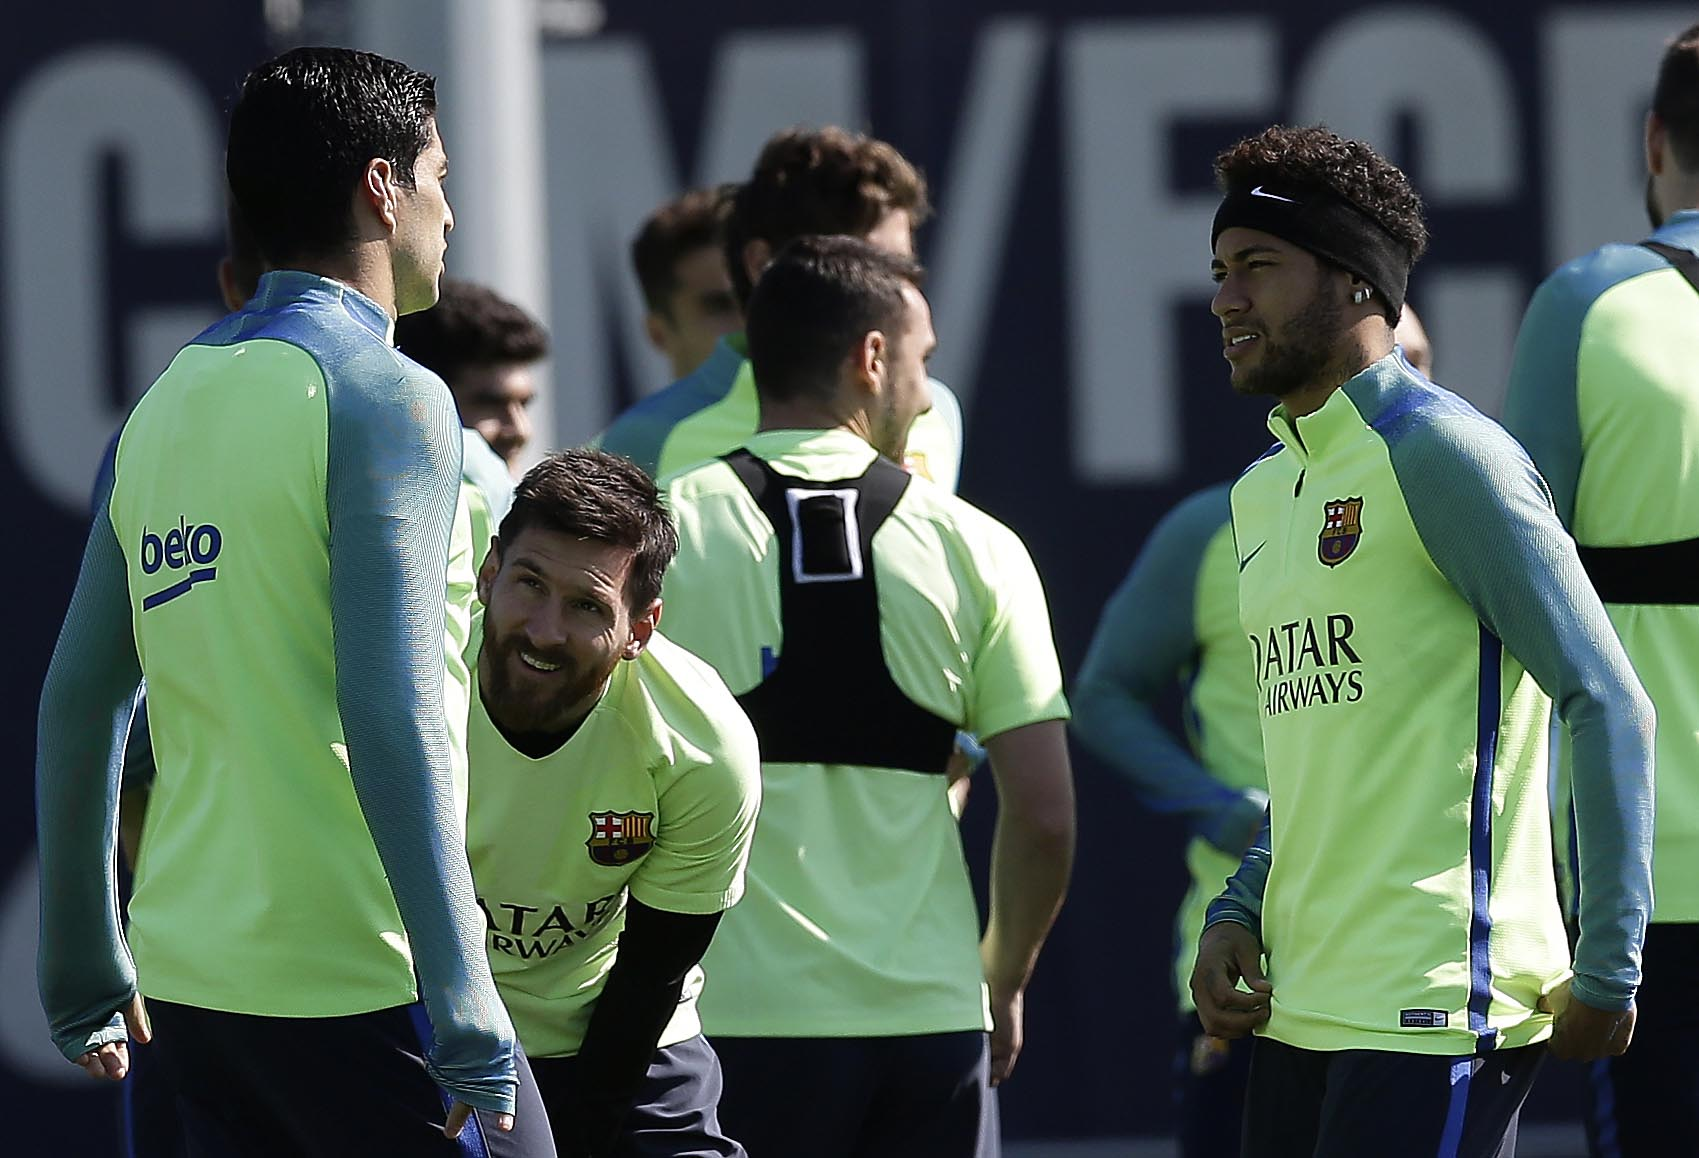 FC Barcelona's Neymar (right), Lionel Messi (second left), and Luis Suarez attend a training session at the Sports Center FC Barcelona Joan Gamper in Sant Joan Despi, Spain, on Tuesday, April 4, 2017. Photo: AP